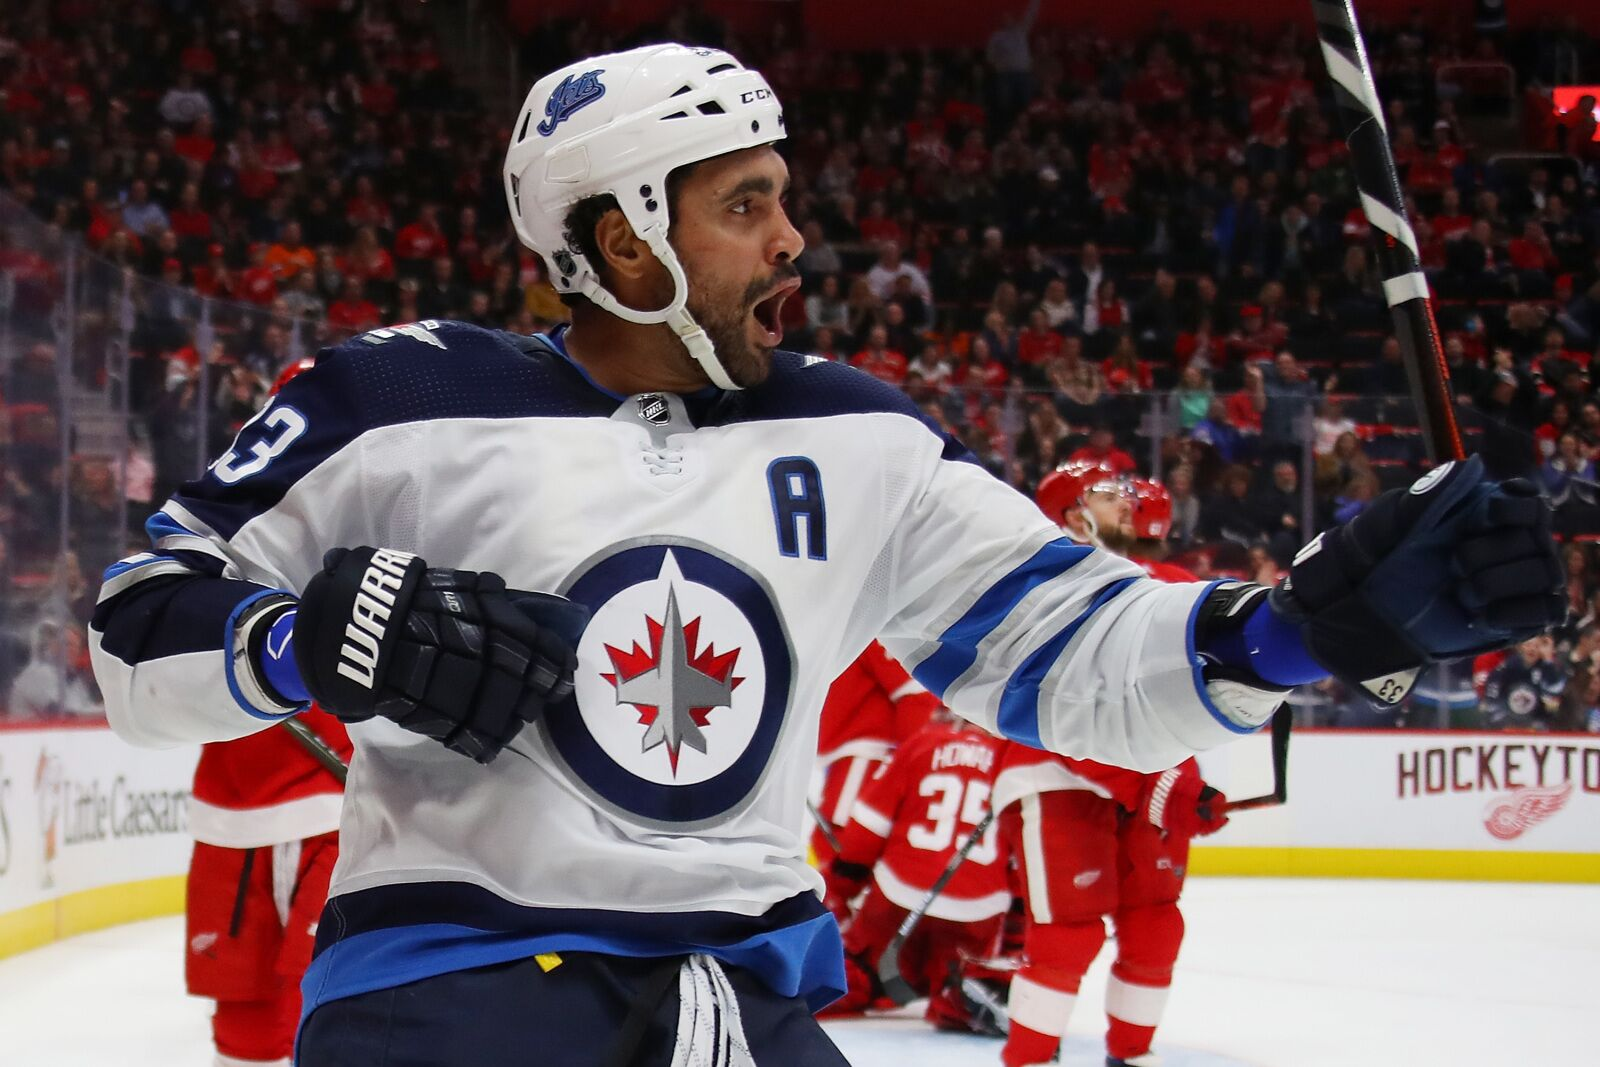 Fantasy Hockey: NHL DFS FanDuel Power Plays for November 11